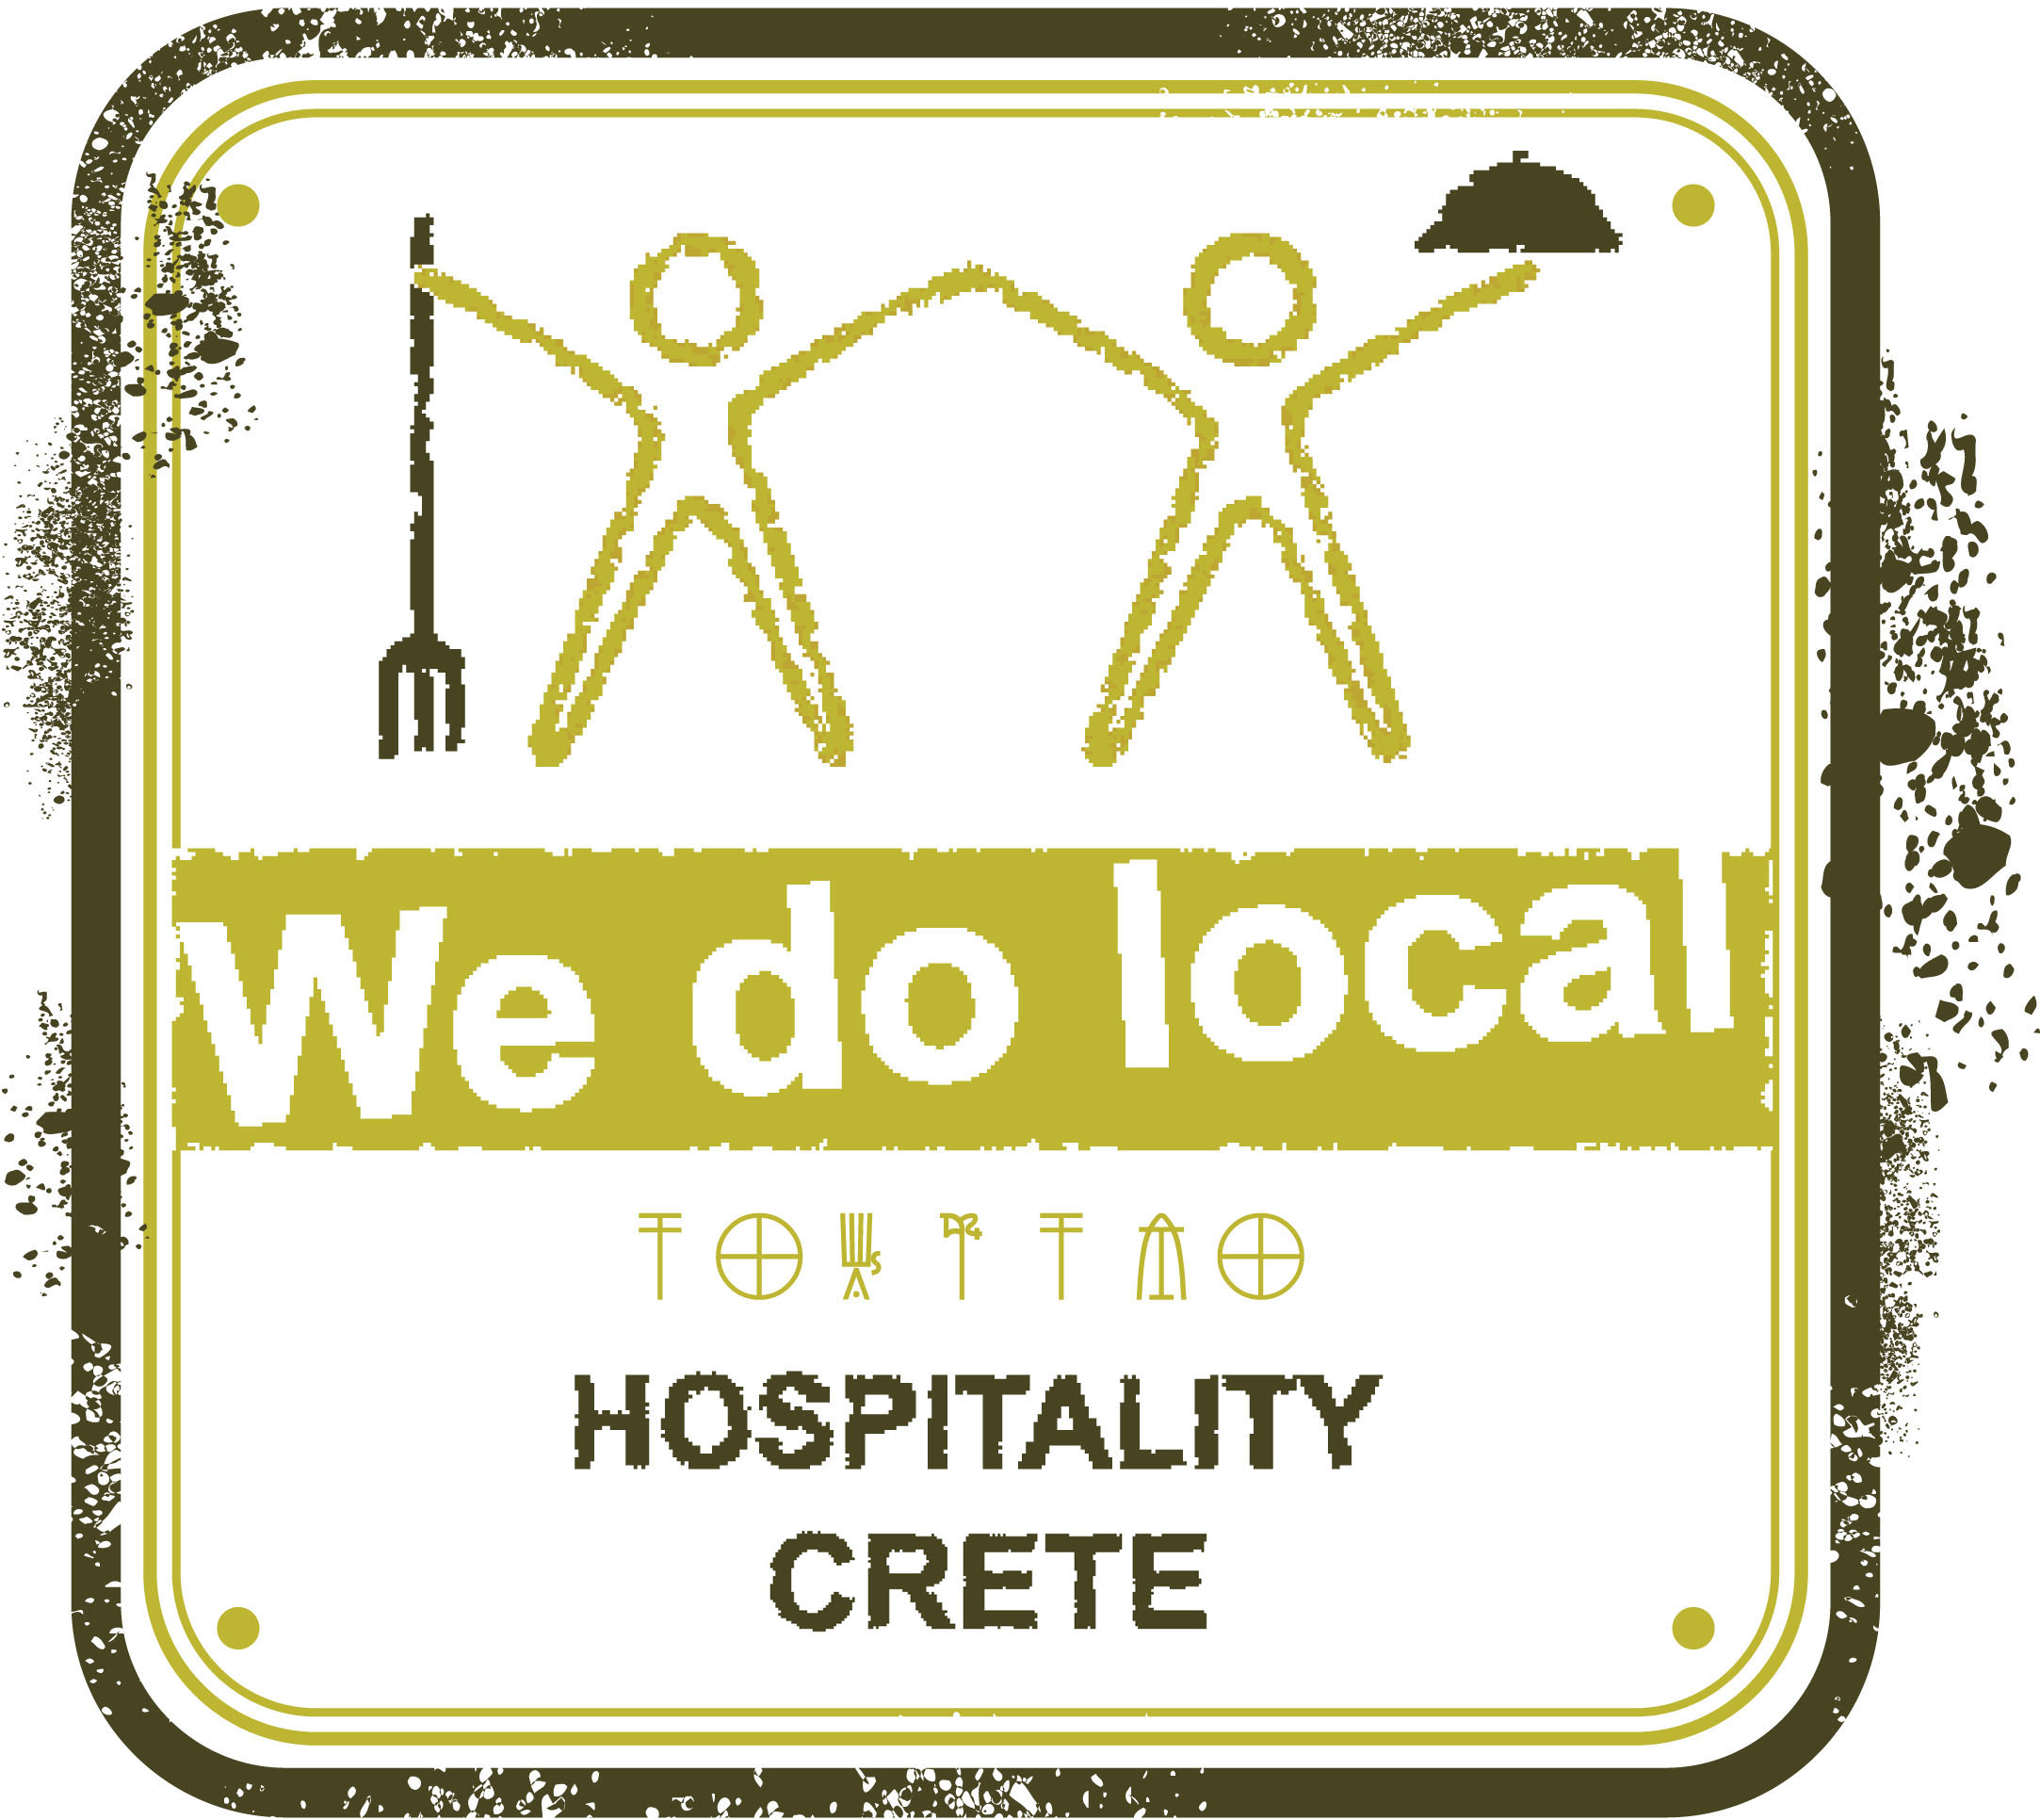 We do local - Hospitality Crete